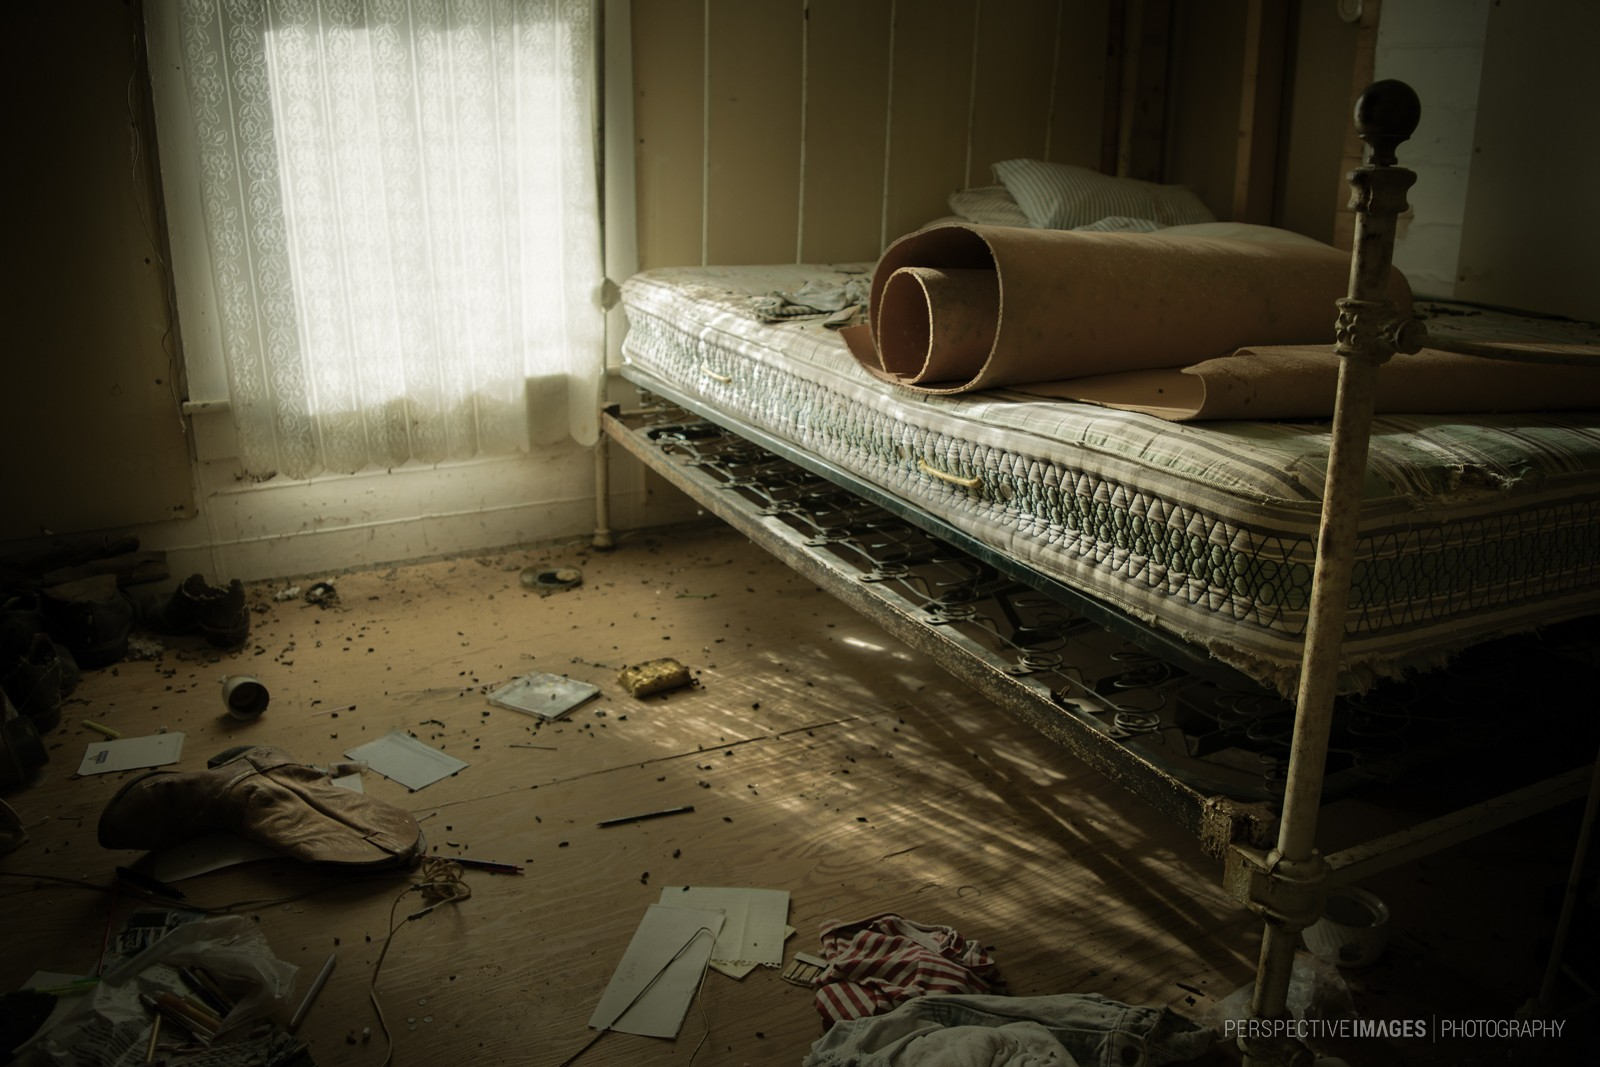 Don't Let the Bed Bugs Bite - Light filters through curtains in an abandoned bedroom.